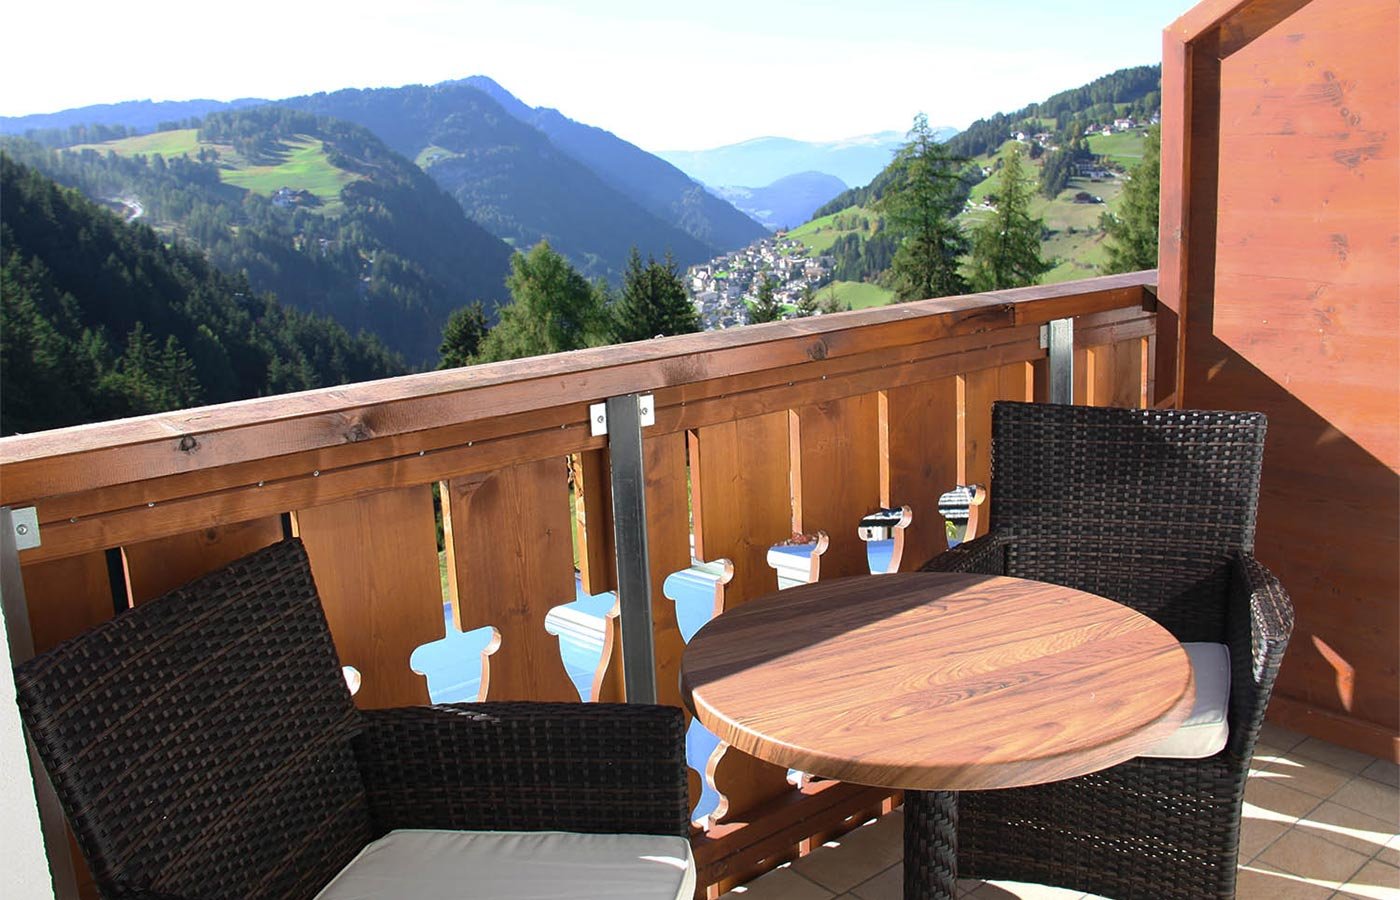 A balcony with valley view